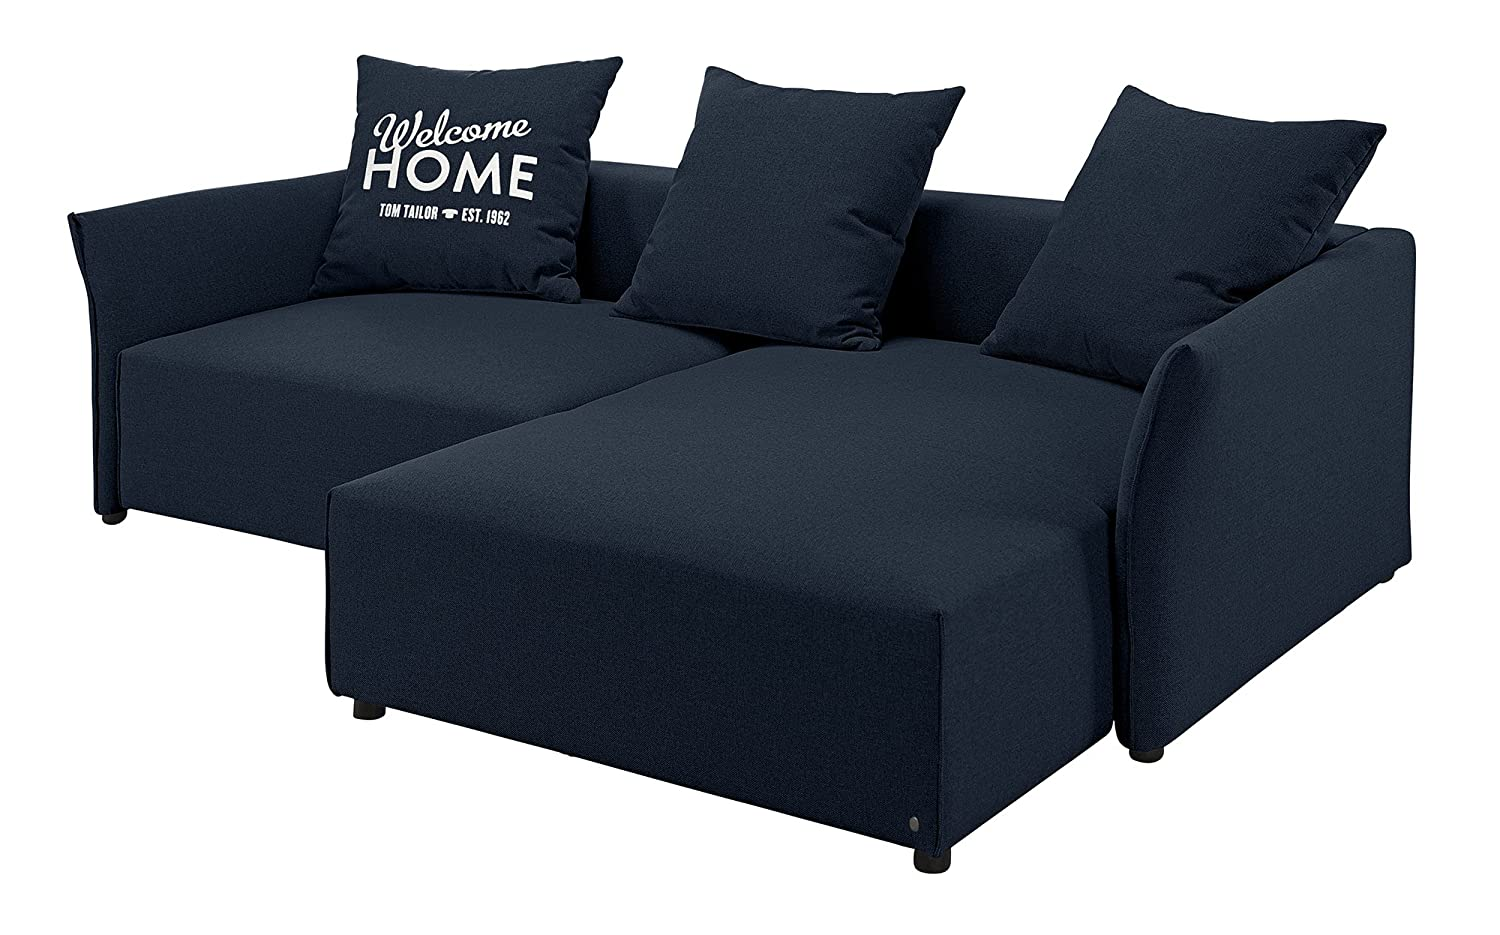 Full Size of Sofa Tom Tailor Wings Casual Schlafsofa Liegefläche 160x200 Konfigurator Hocker Megapol Boxspring Leder Erpo Mit Schlaffunktion L Form Verkaufen Altes Sofa Sofa Tom Tailor